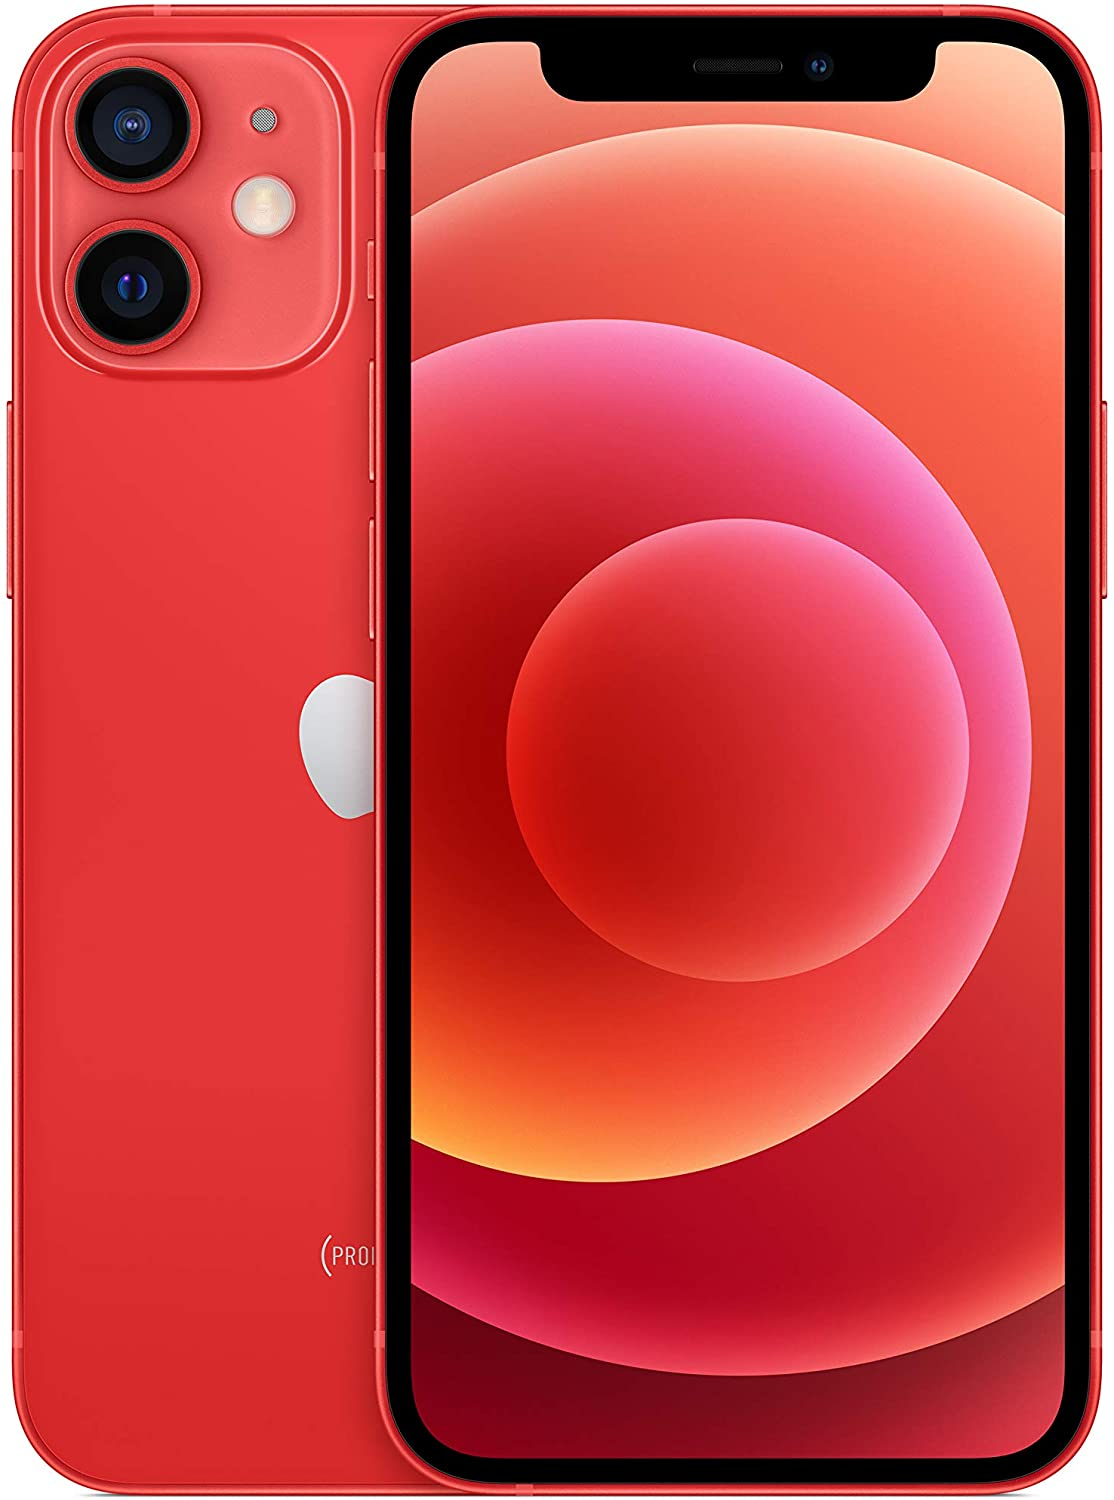 Apple iPhone 12 mini 128GB, Handy (Product Red, iOS) MGE53ZD/A Mobilais Telefons